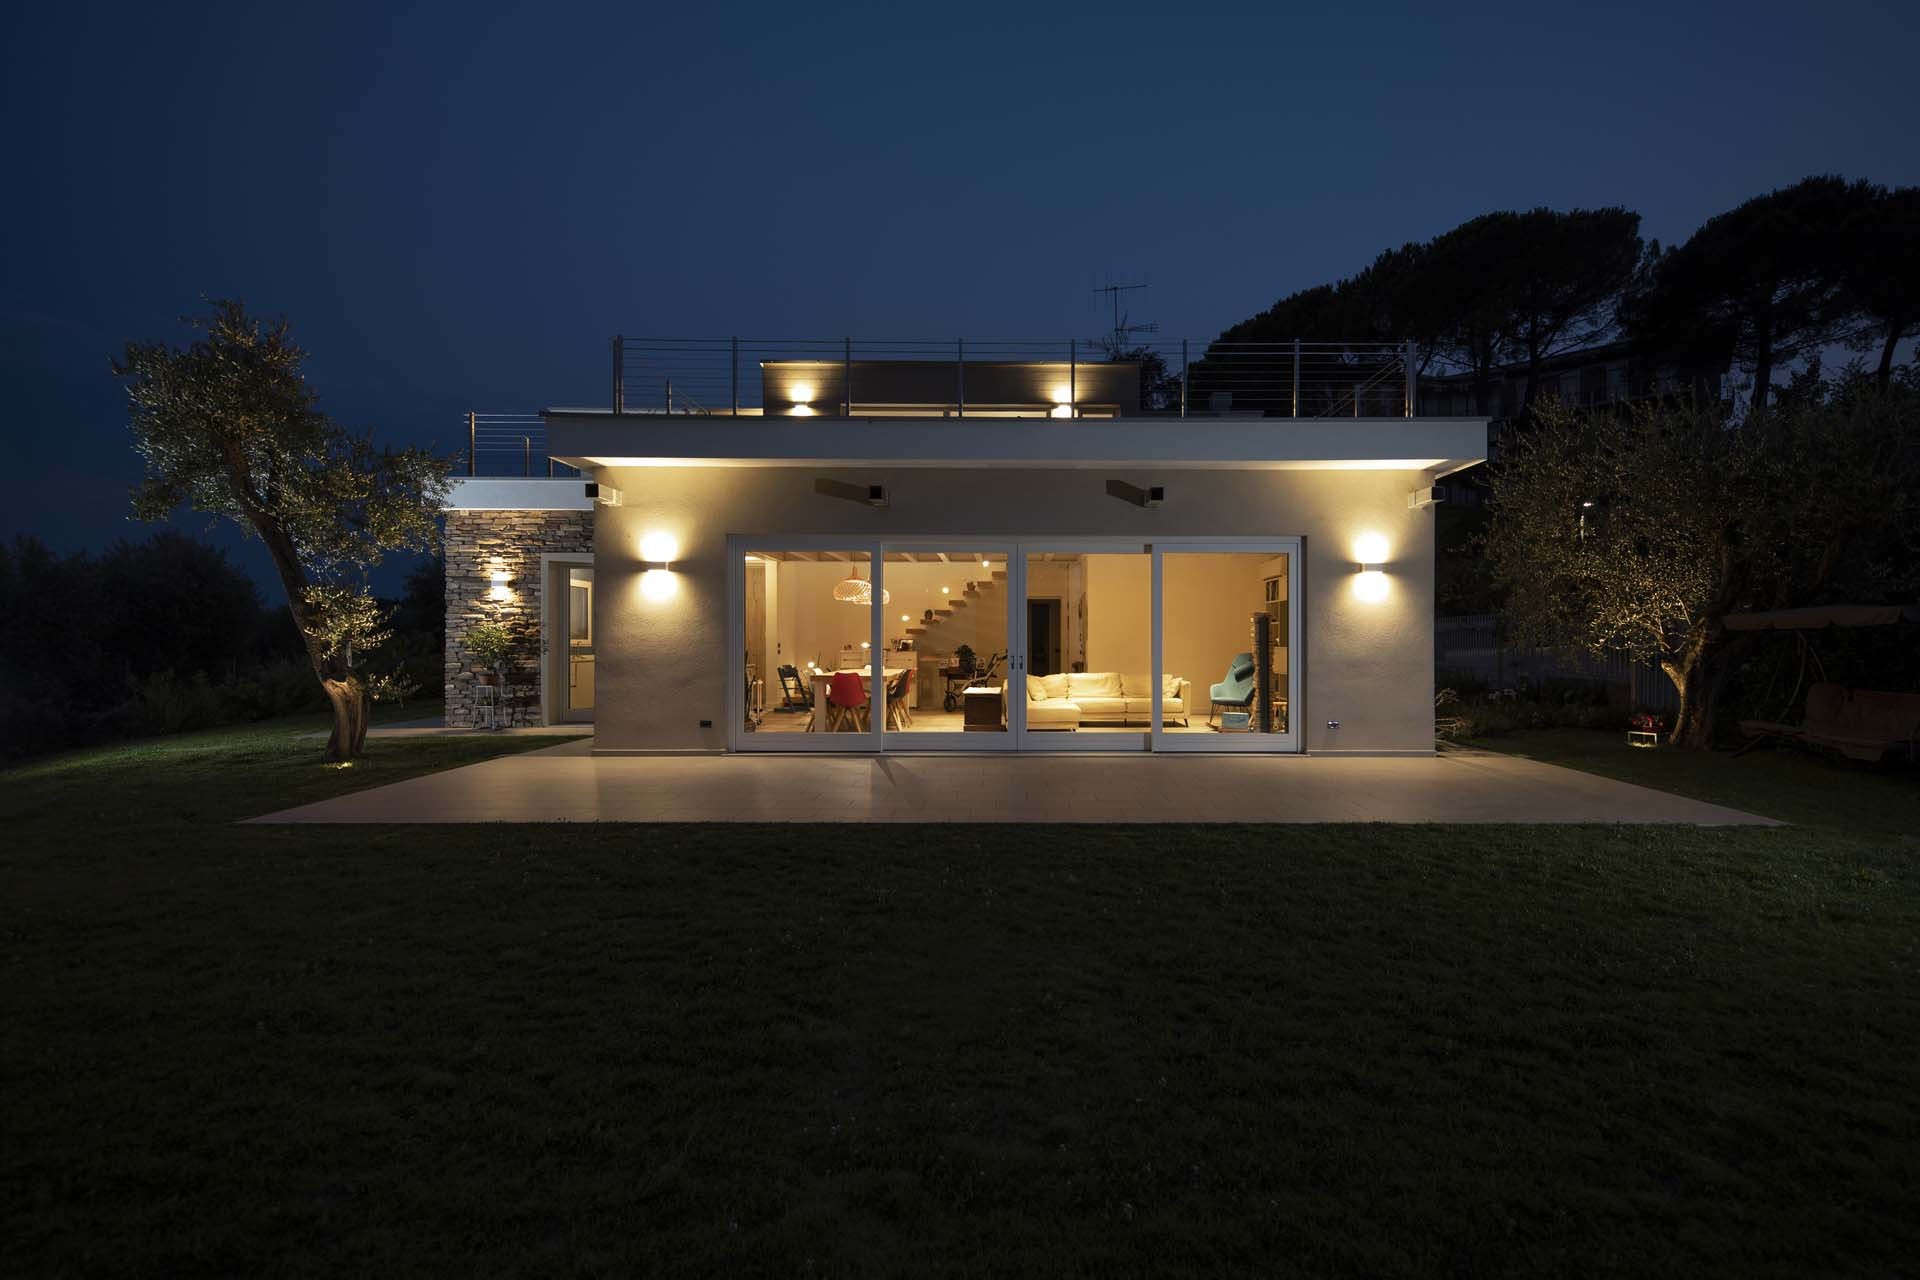 Traditional wooden houses ille technology experience for Piani casa a basso reddito